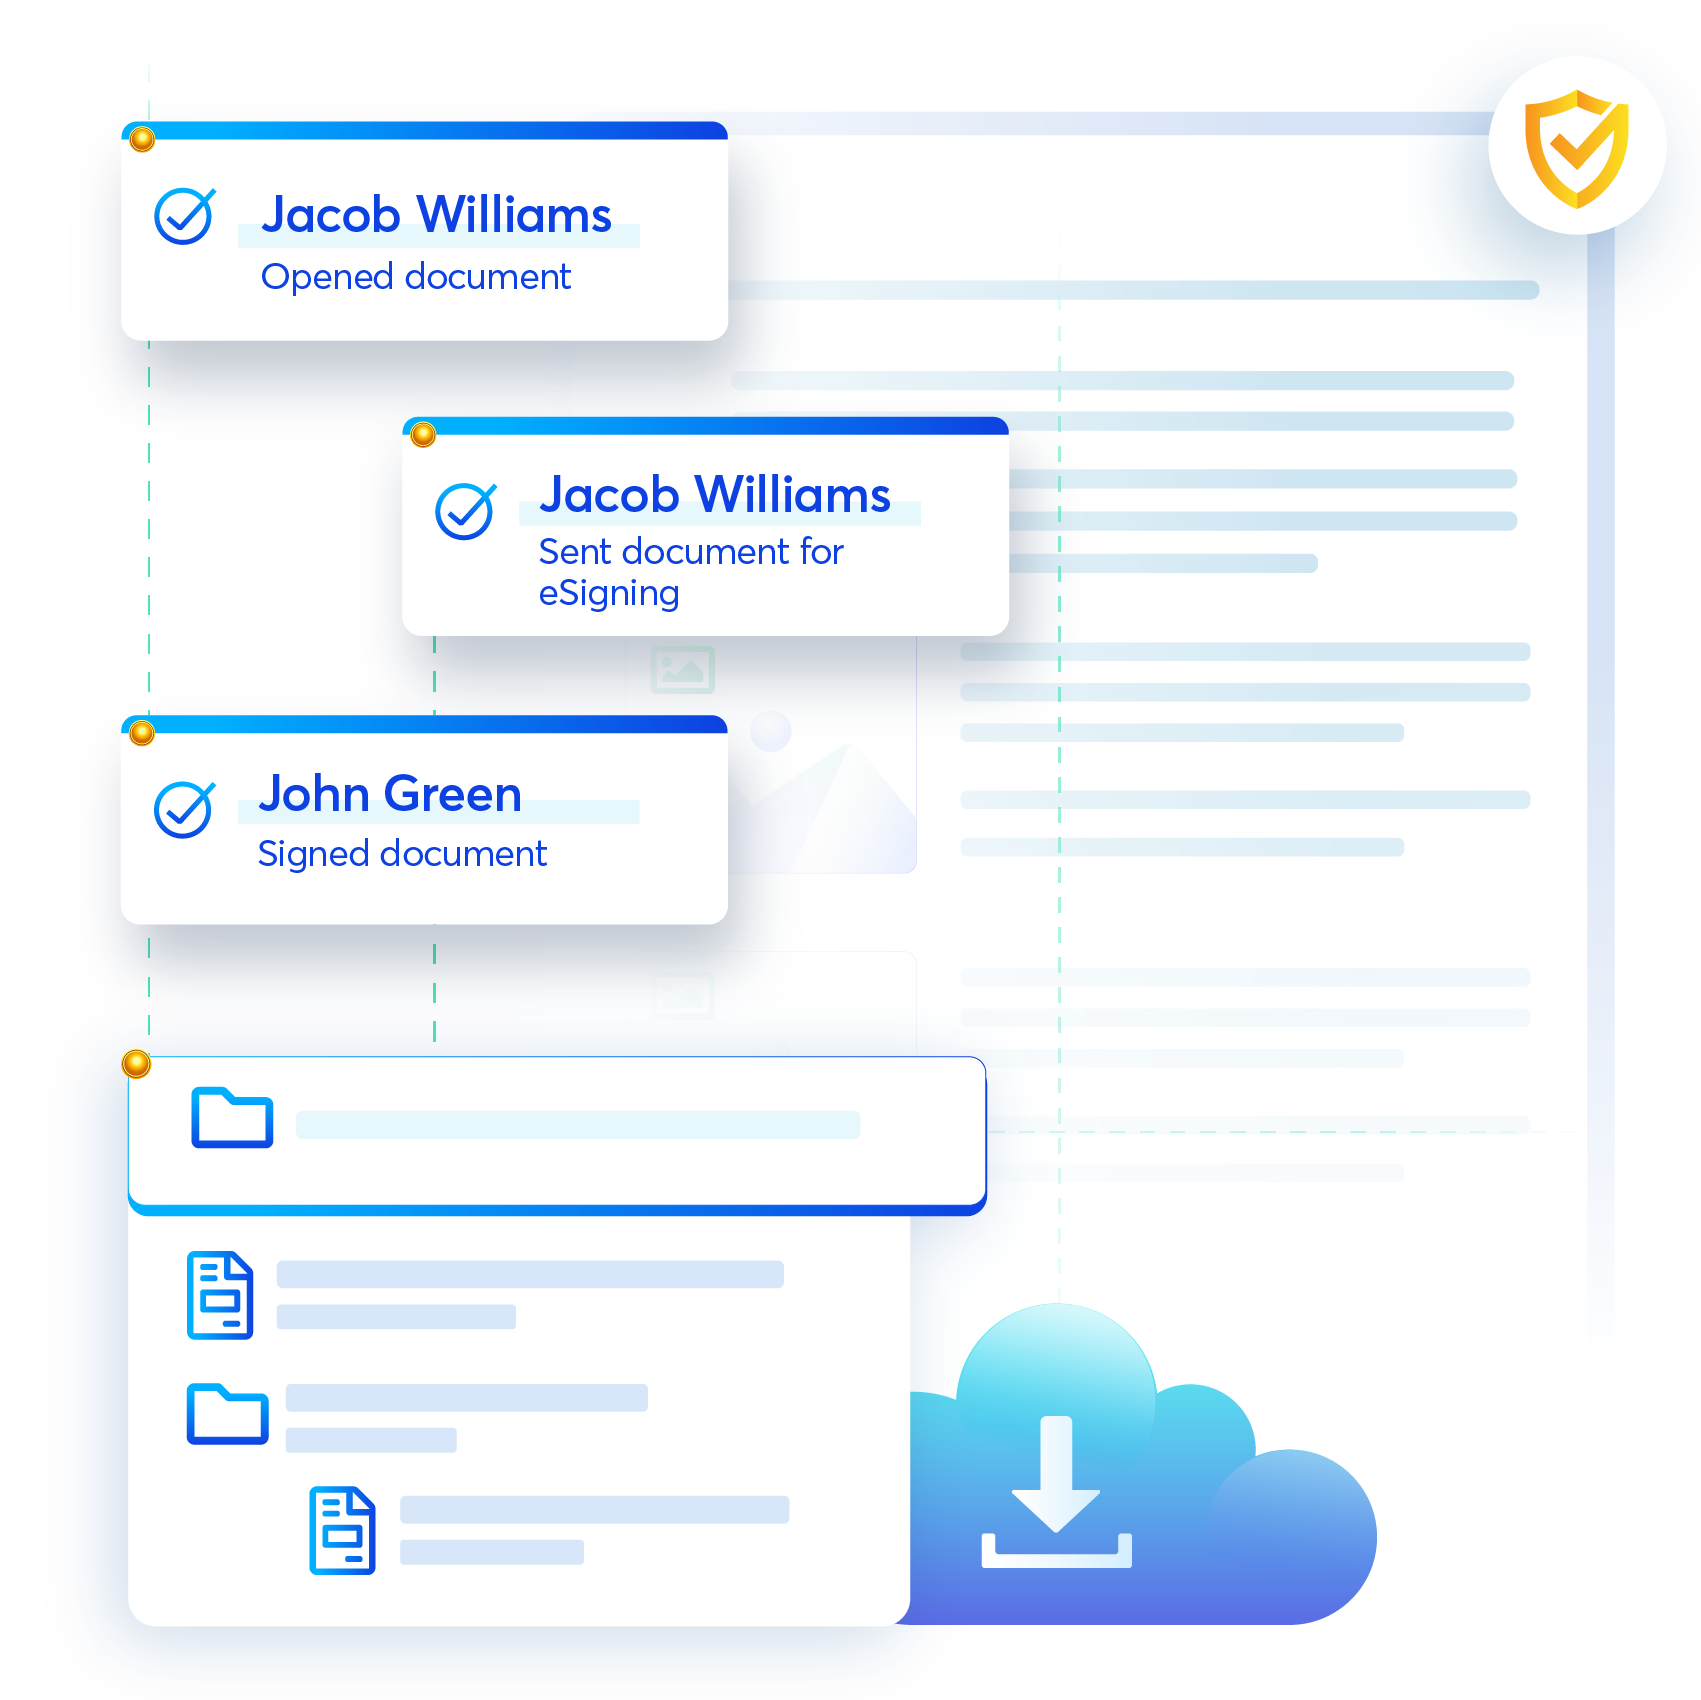 Contract management platform, Revv, gives you centralized complete control and visibility to the entire lifecycle of contracts.